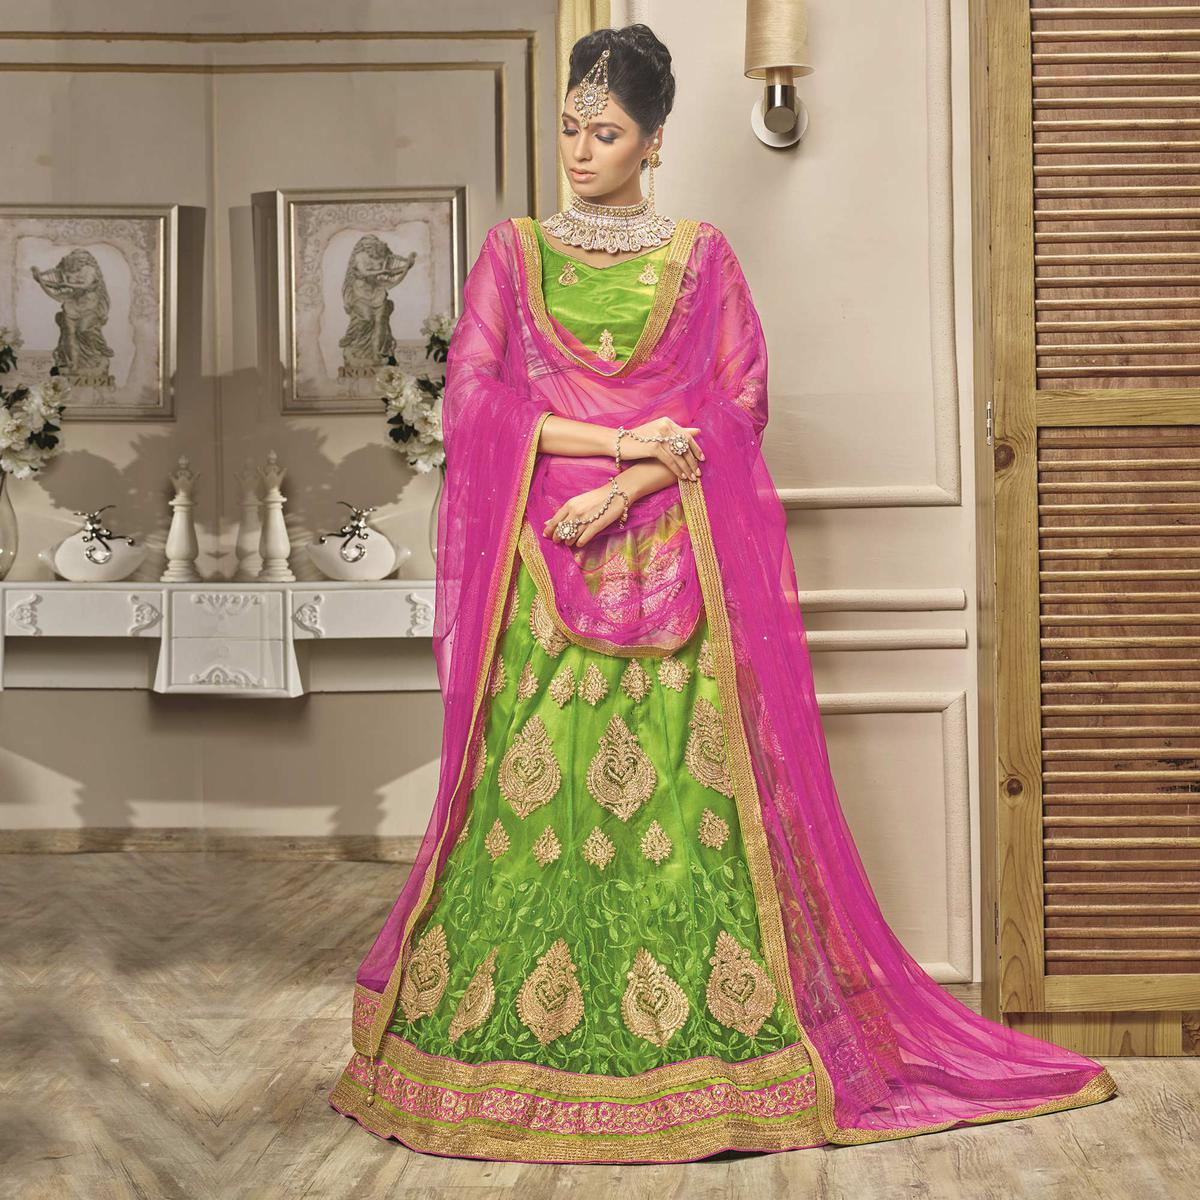 Elegant Parrot Green - Rani Designer Net Embroidered Lehenga Choli With Net Dupatta